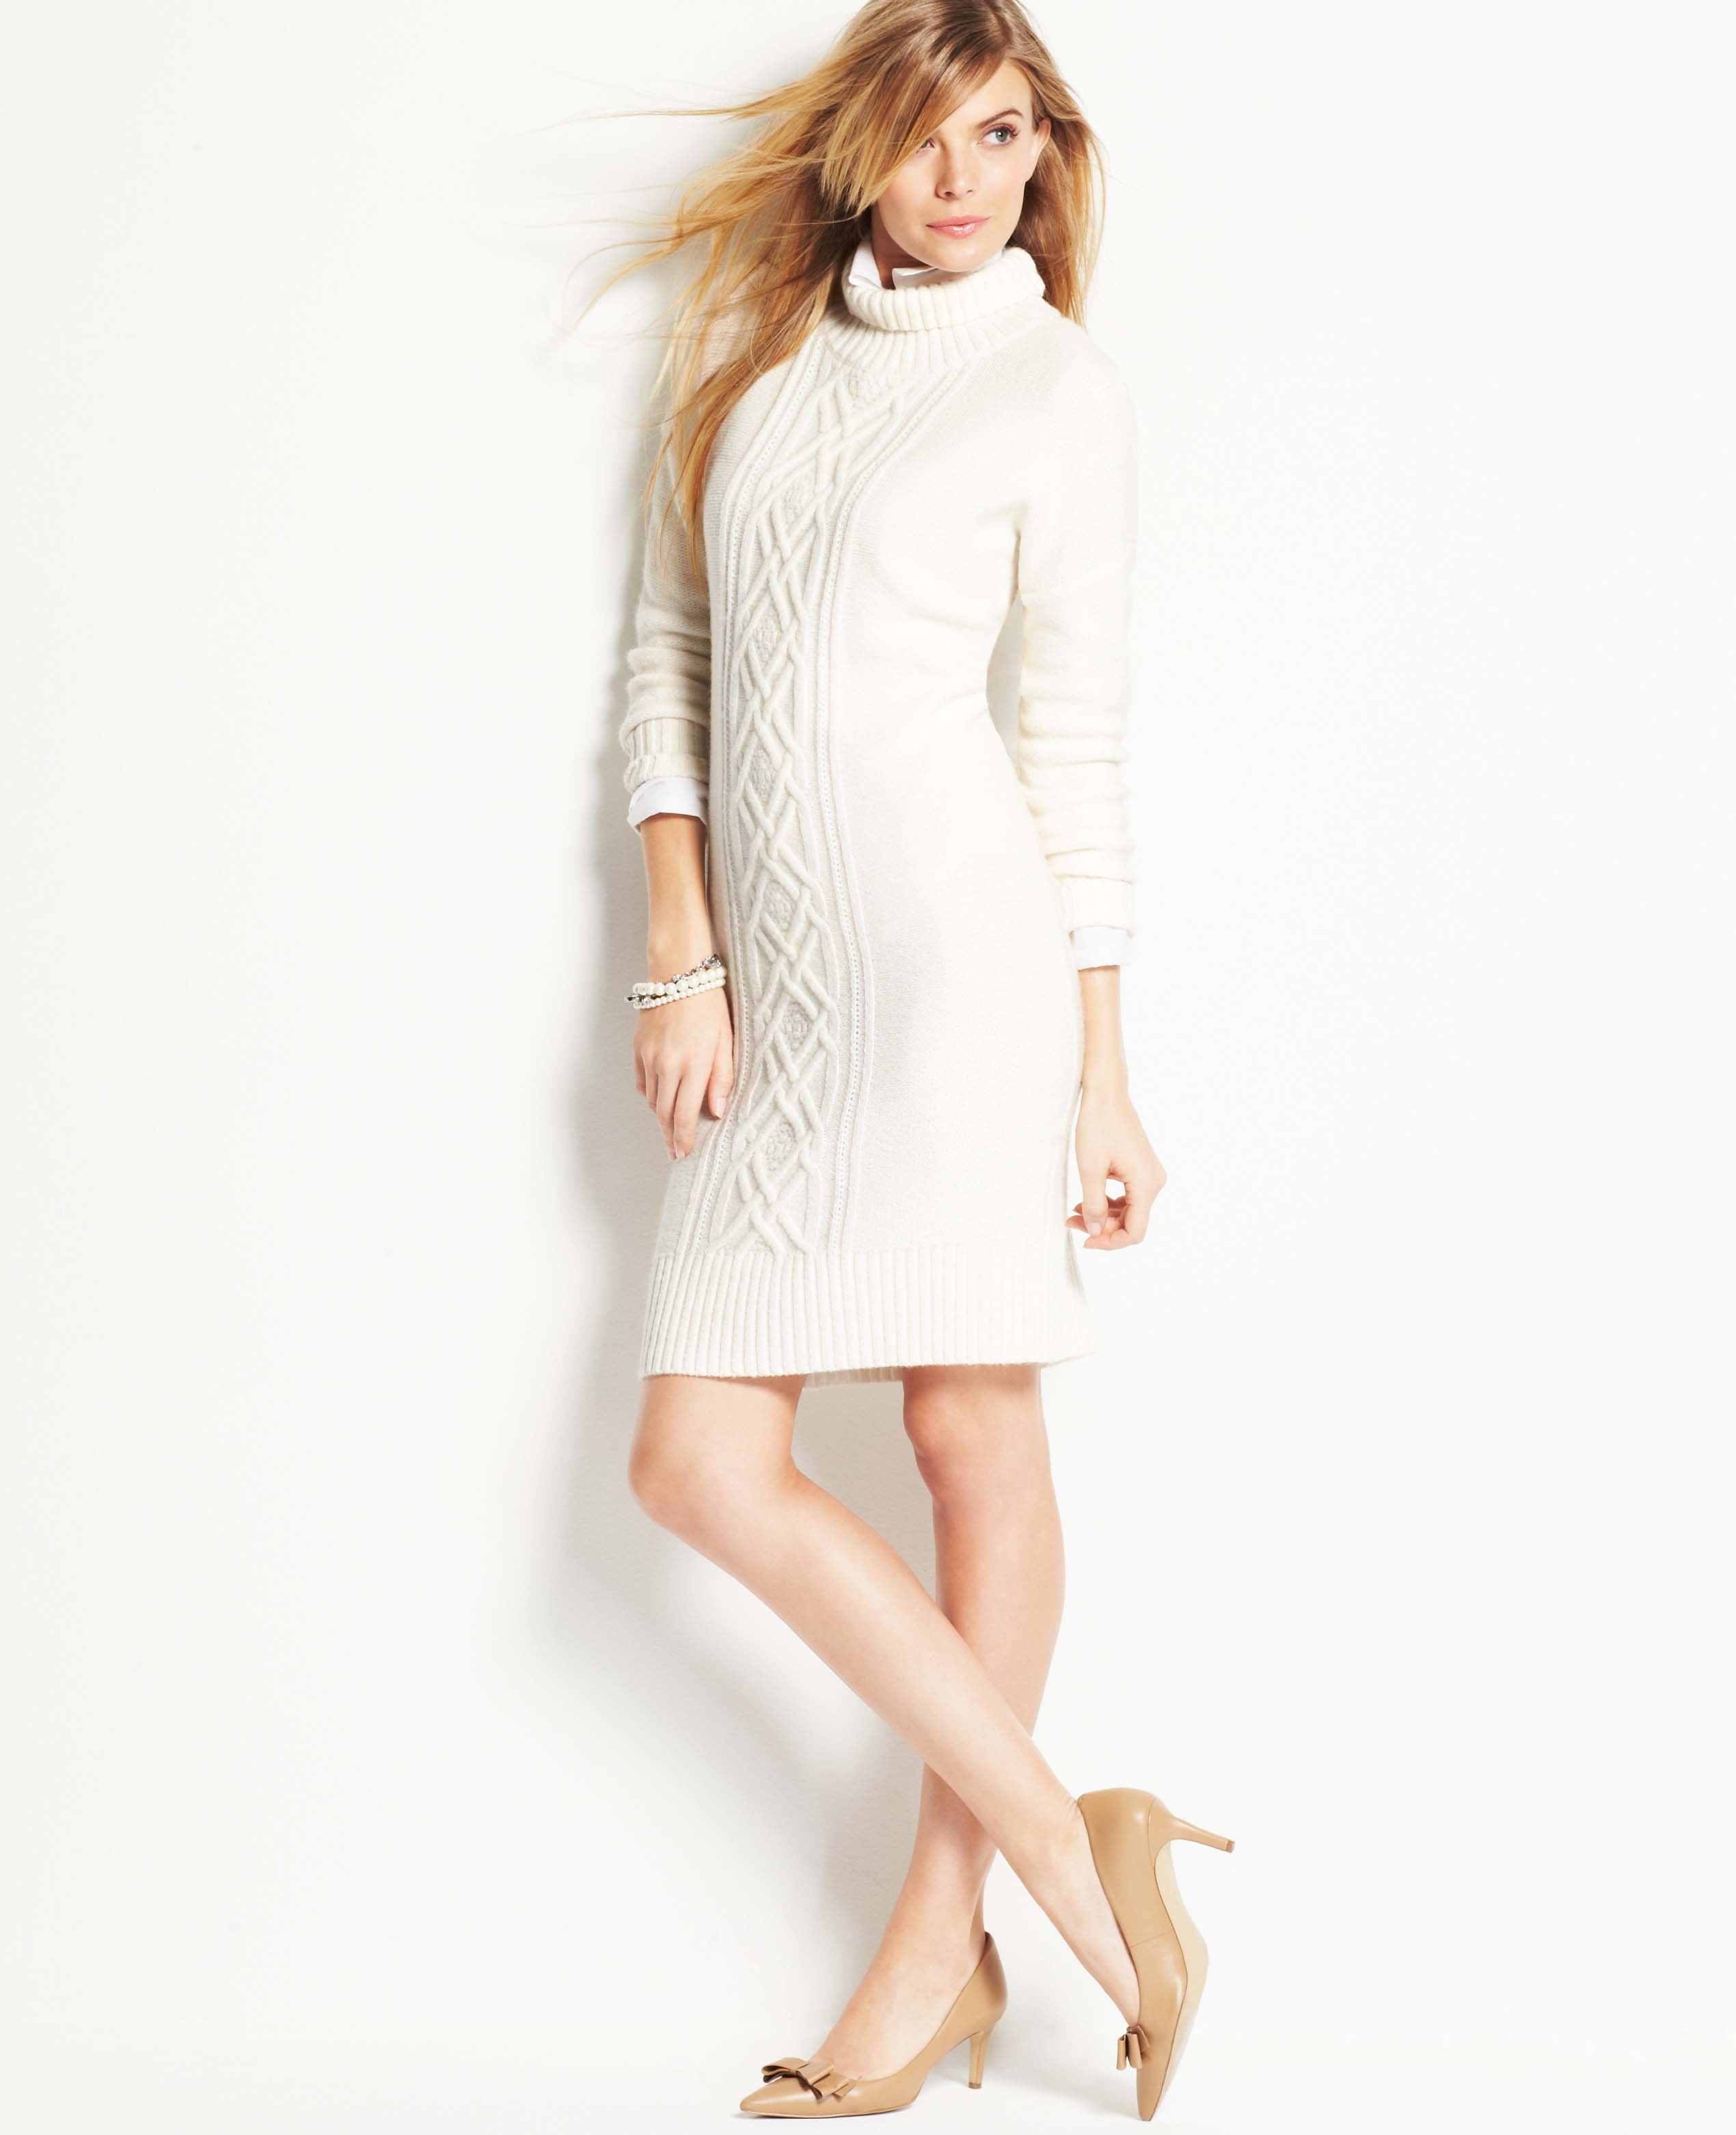 834986a2f9 Ann Taylor Cable Sweater Dress in White - Lyst